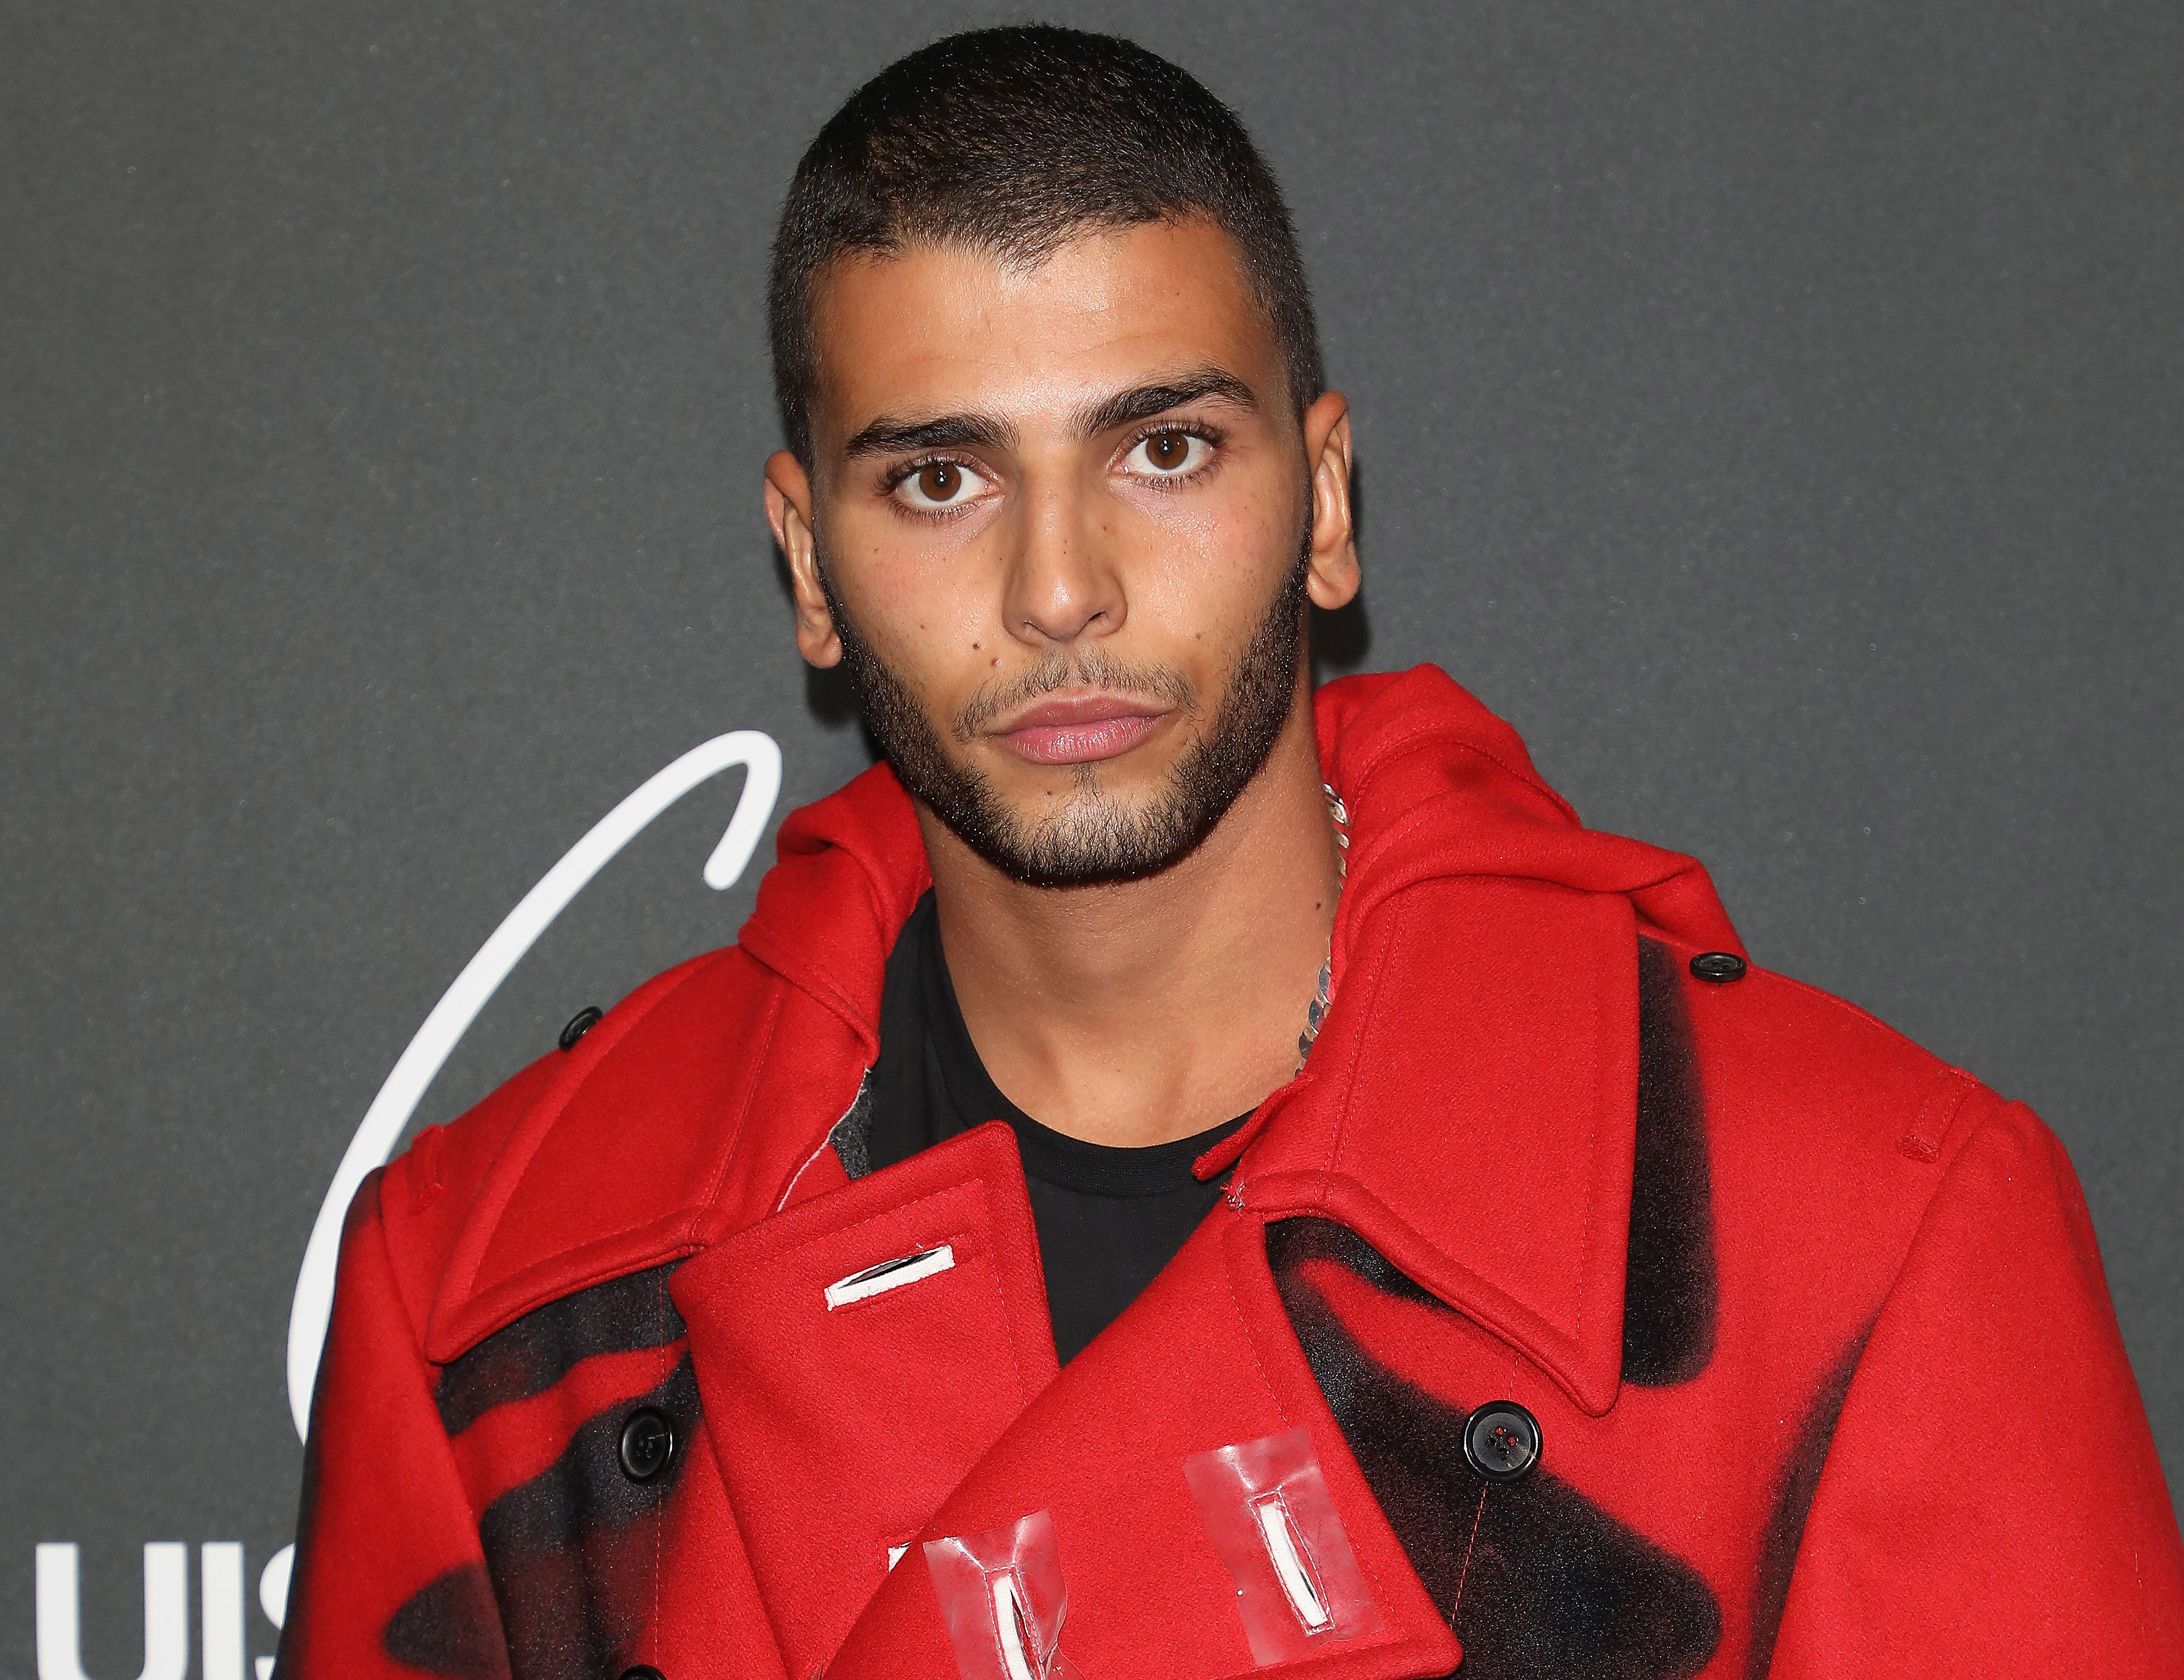 Younes Bedjima Faces Default Judgment in Assault Case - Younes Bendjima attends the CR Fashion Book x Luisasaviaroma: Photocall as part of the Paris Fashion Week Womenswear Spring/Summer 2019 on October 1, 2018.